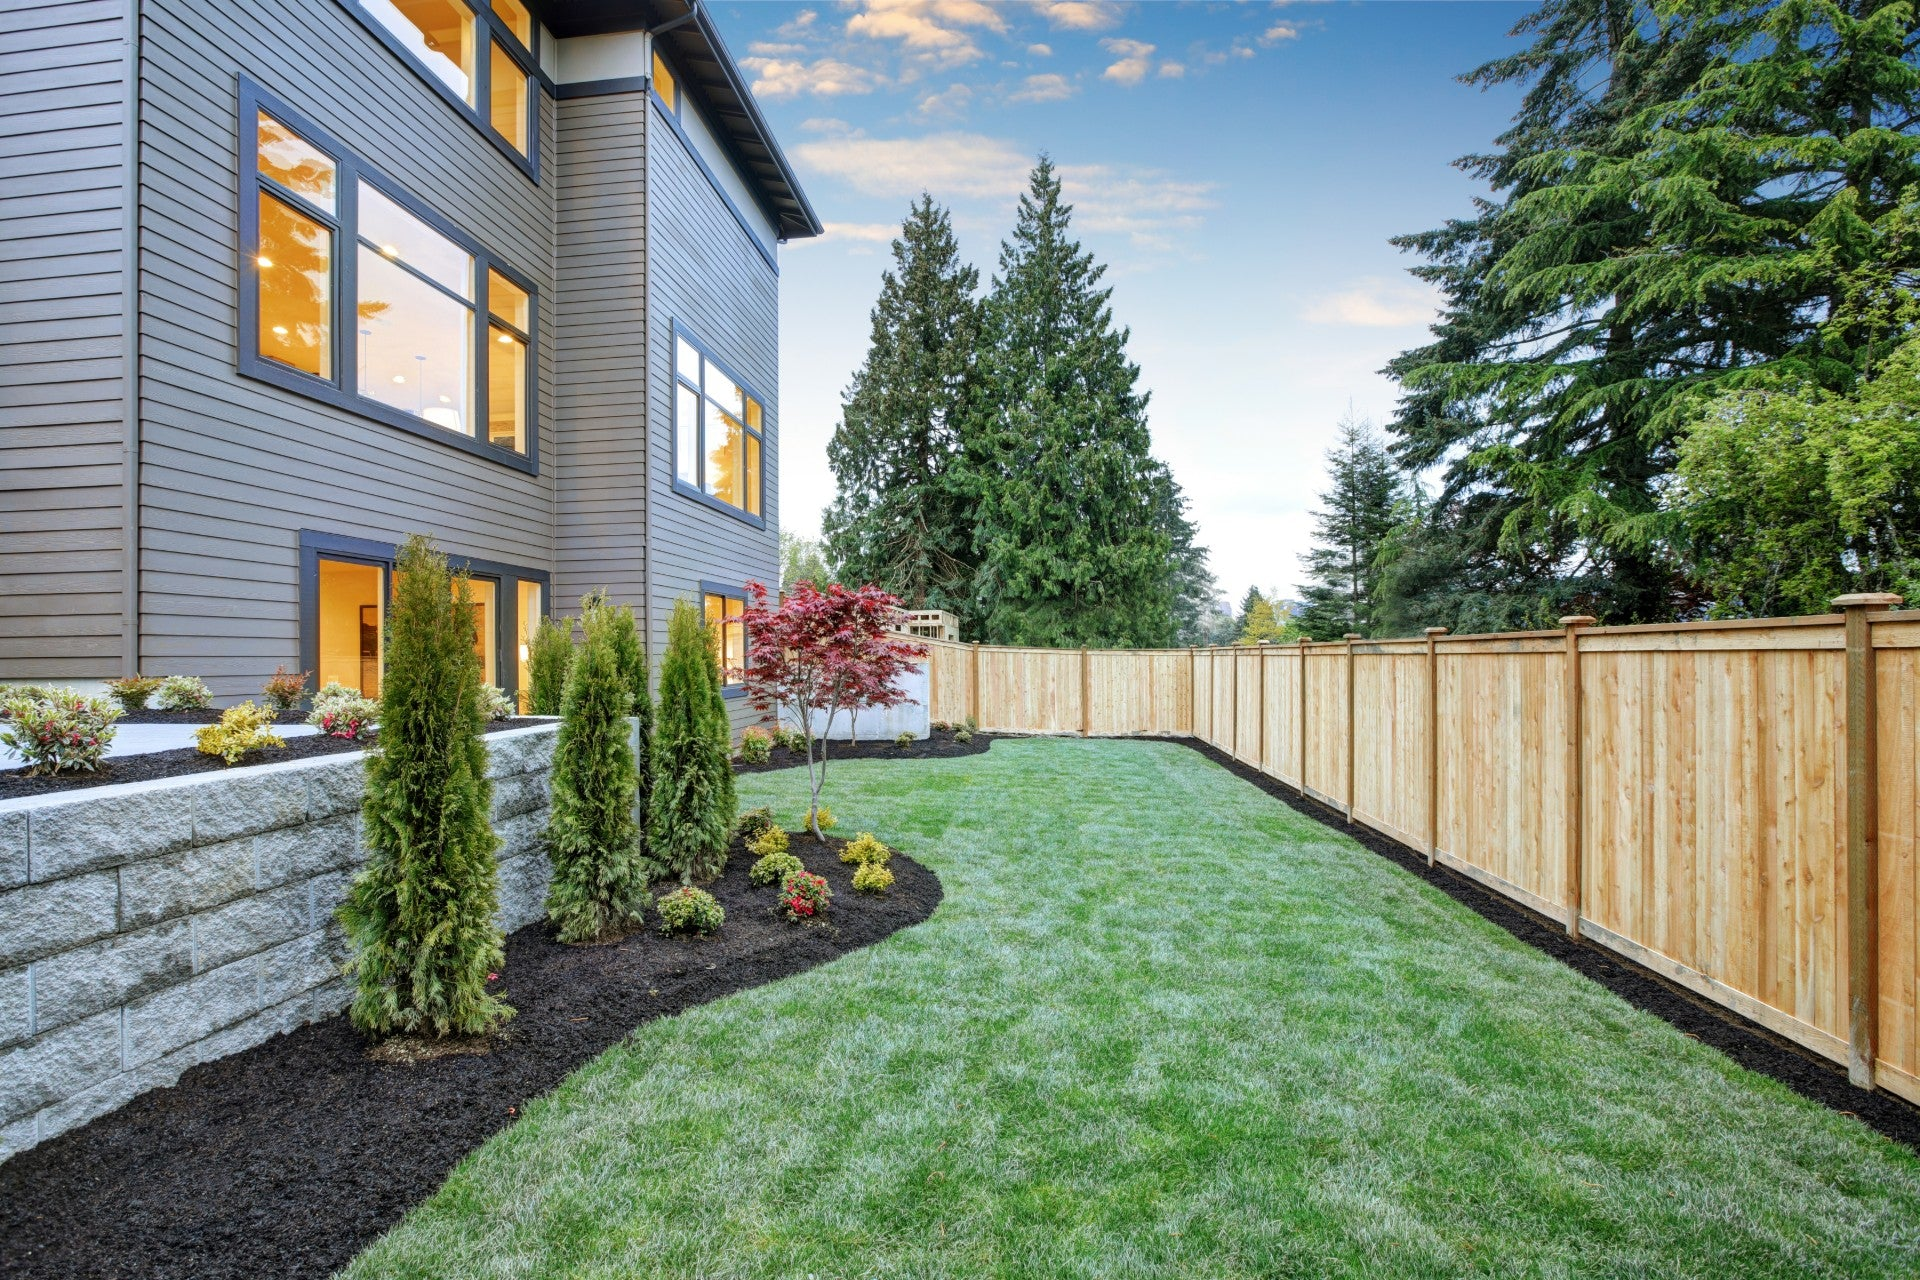 Landscaped Backyard with Wooden Fence